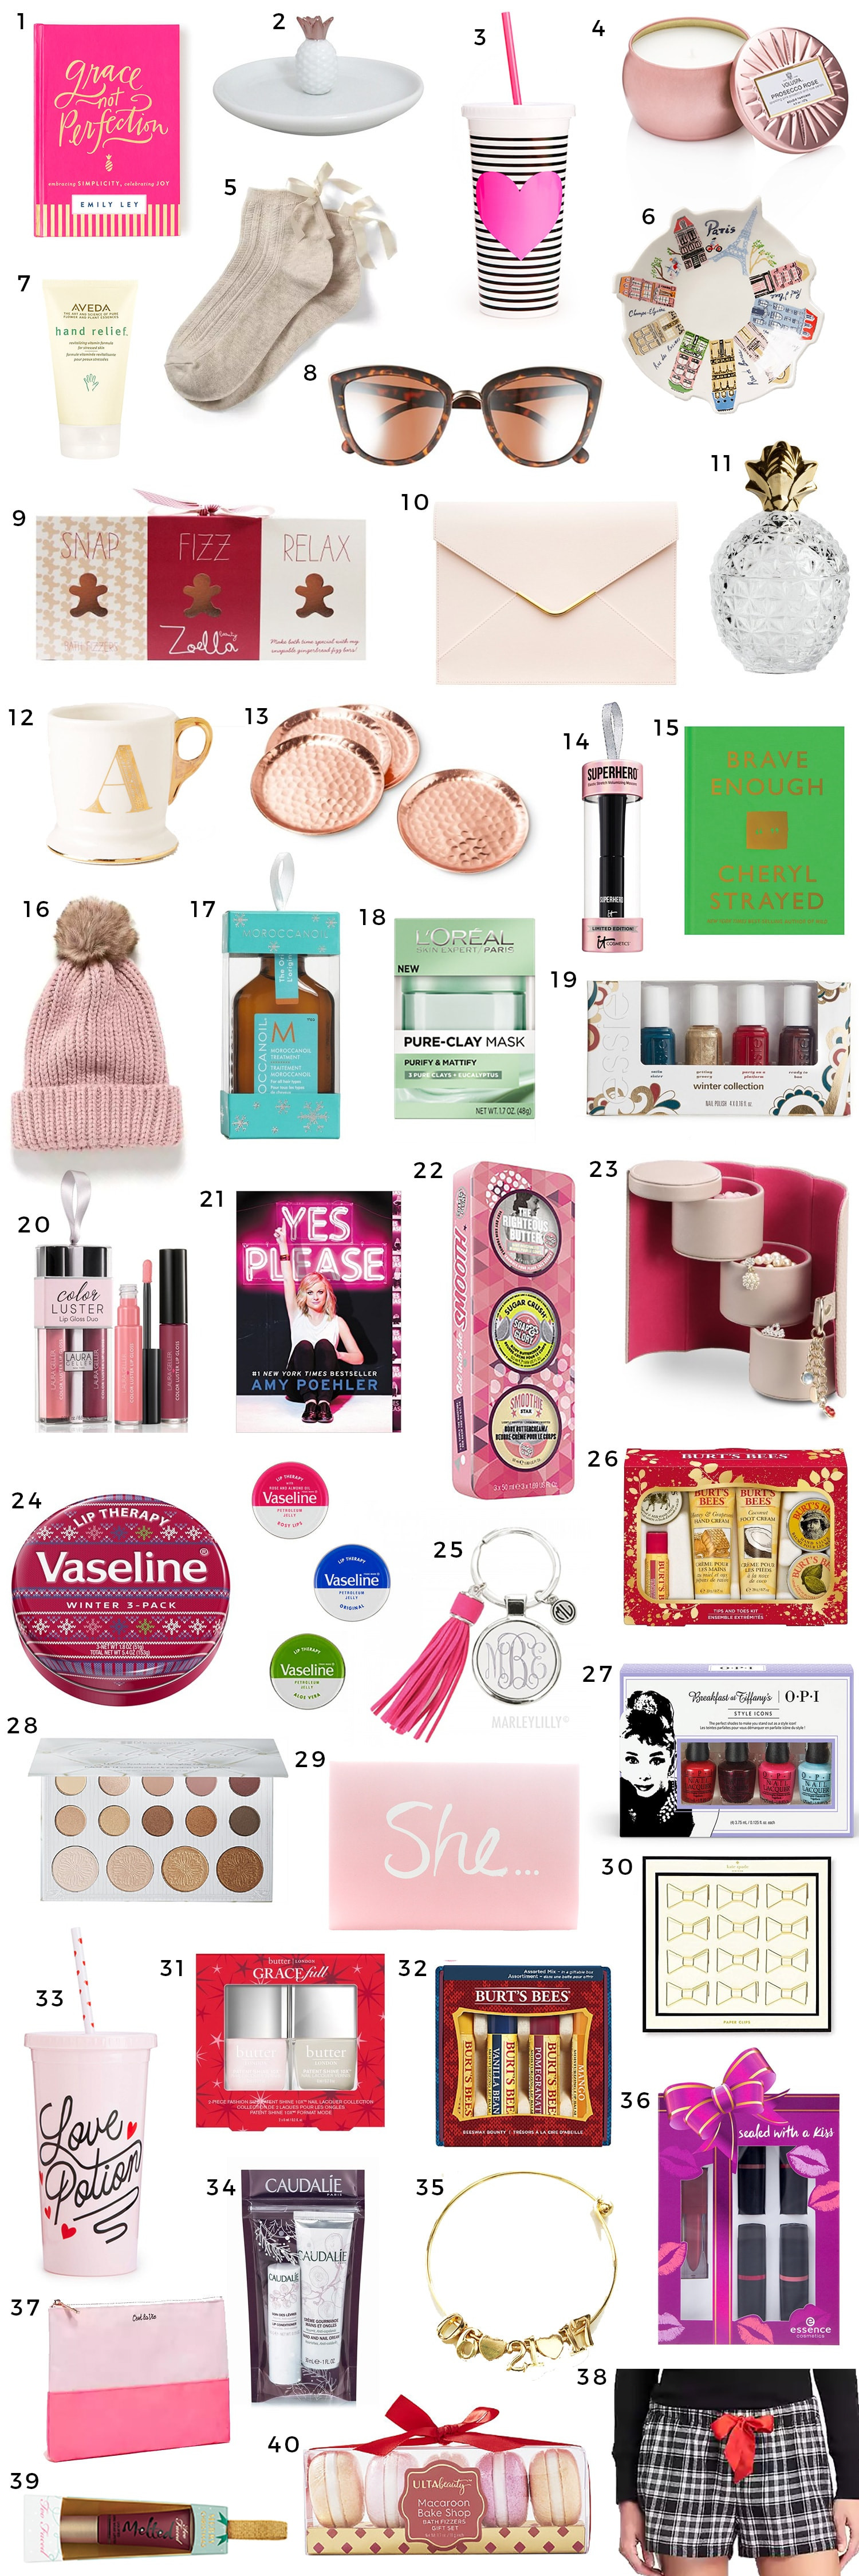 Best Christmas Gift Ideas  The Best Christmas Gift Ideas for Women Under $15